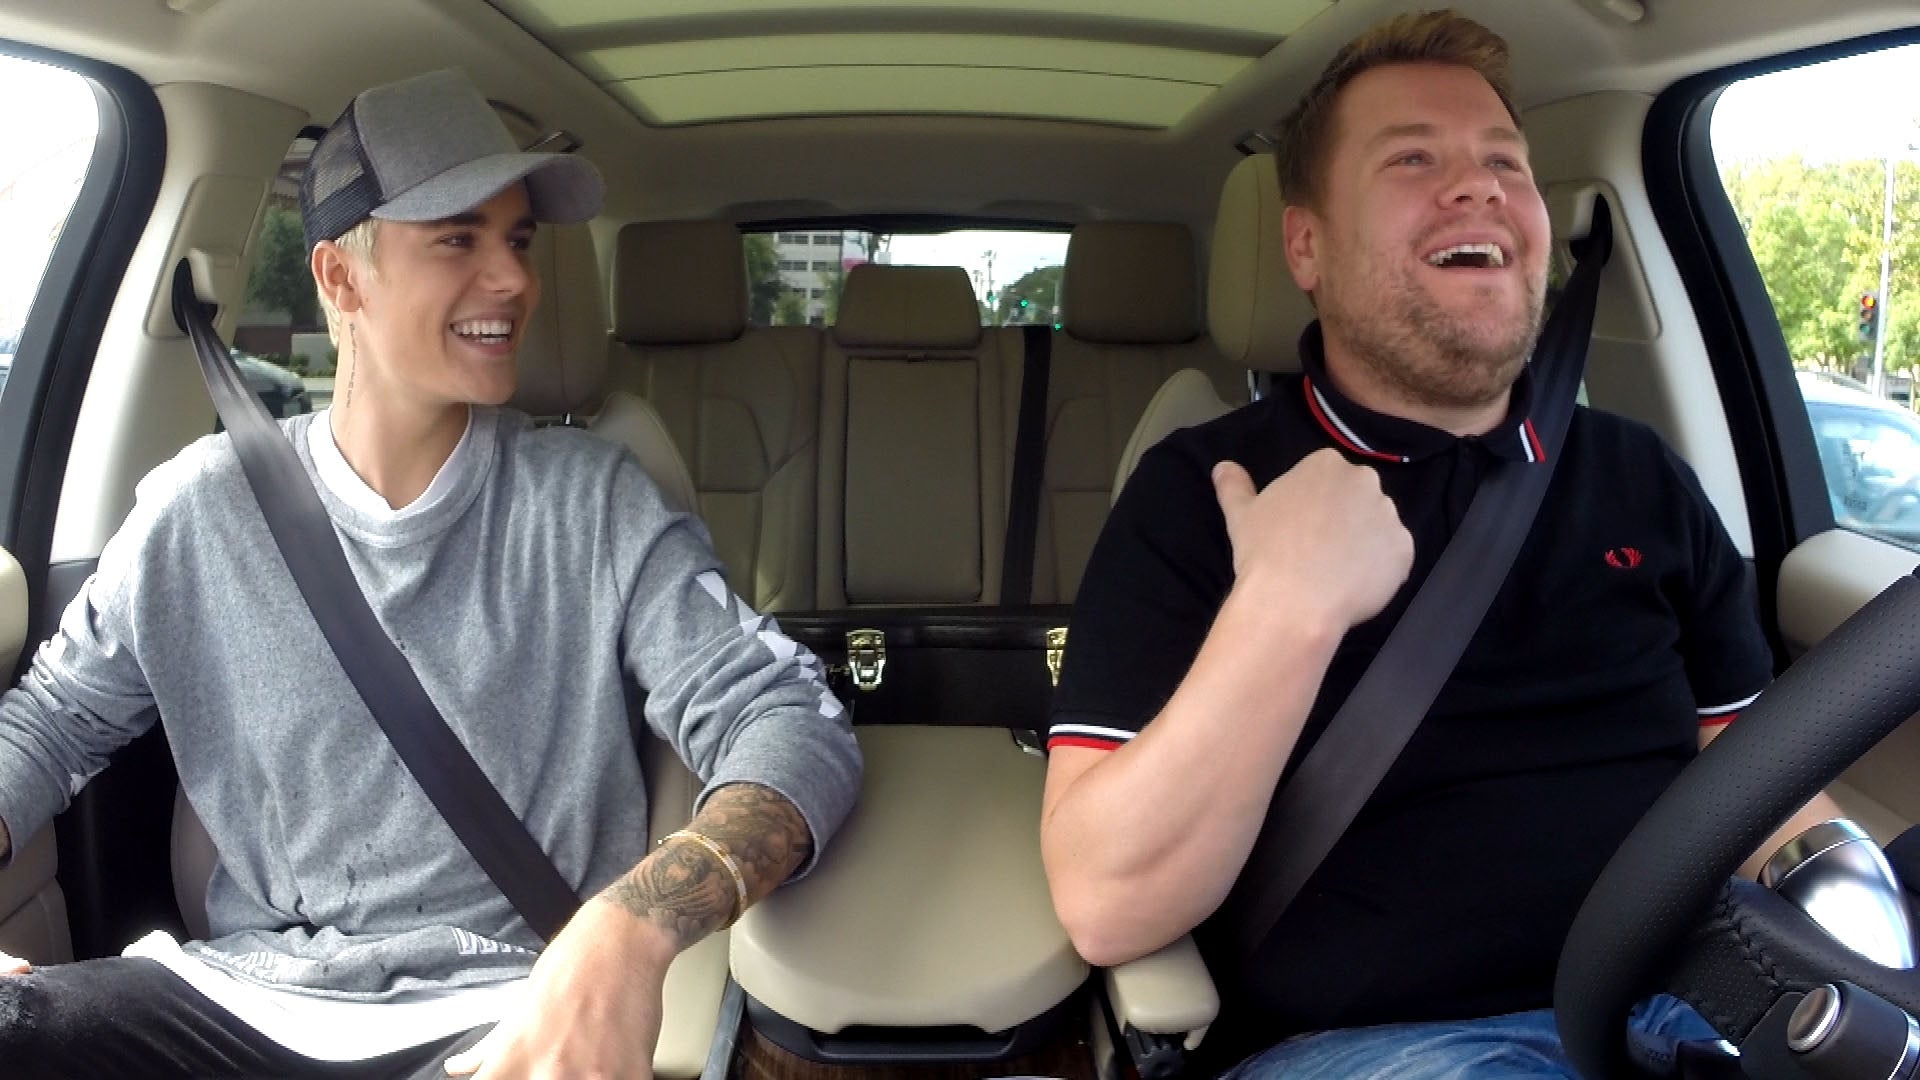 Justin Bieber and James Corden Film Third 'Carpool Karaoke' Segment: Why Fans Are Shocked